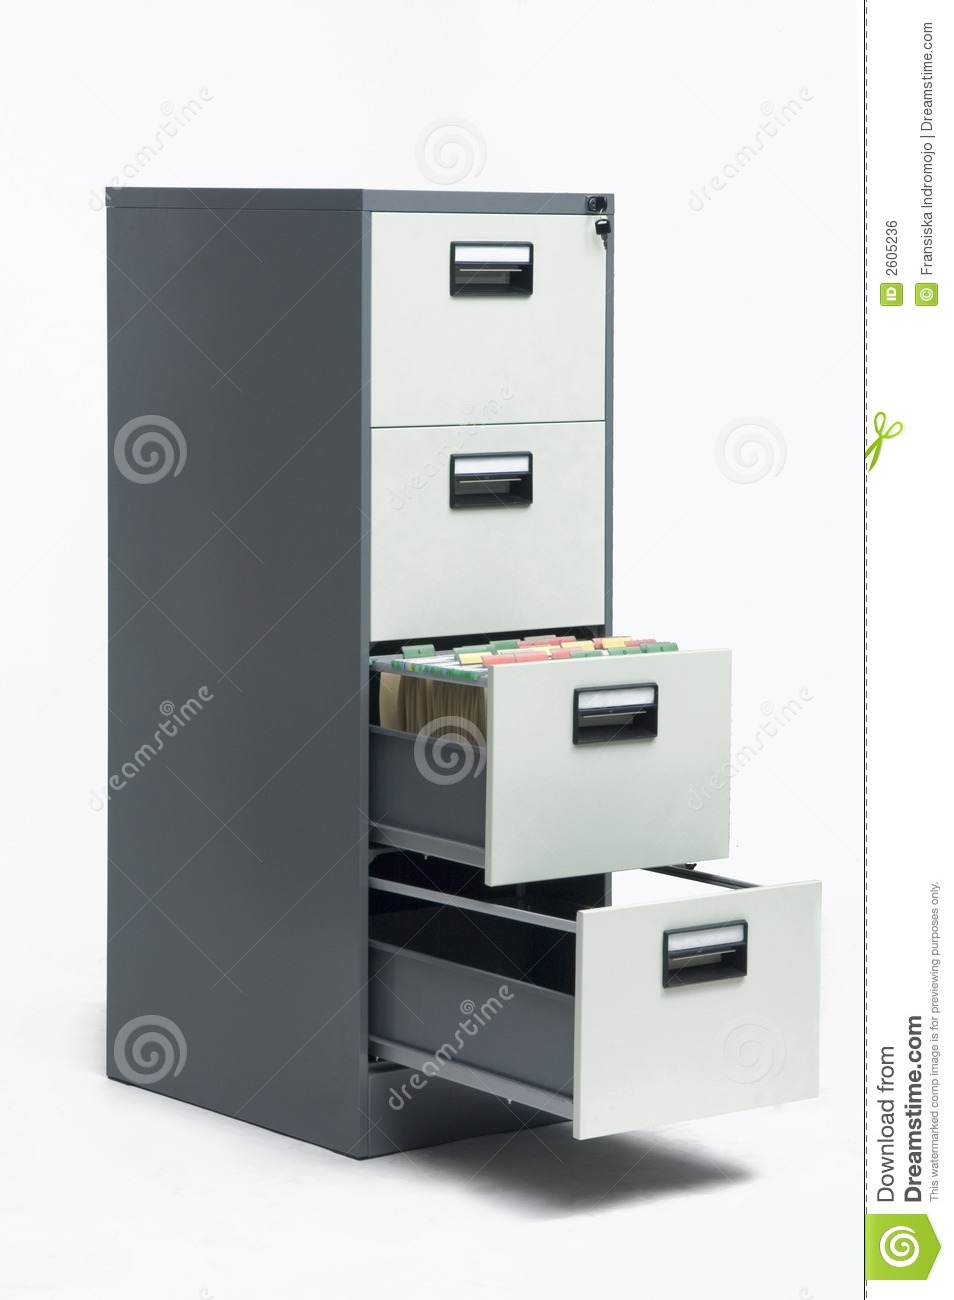 filing cabinet royalty free stock image image 2605236